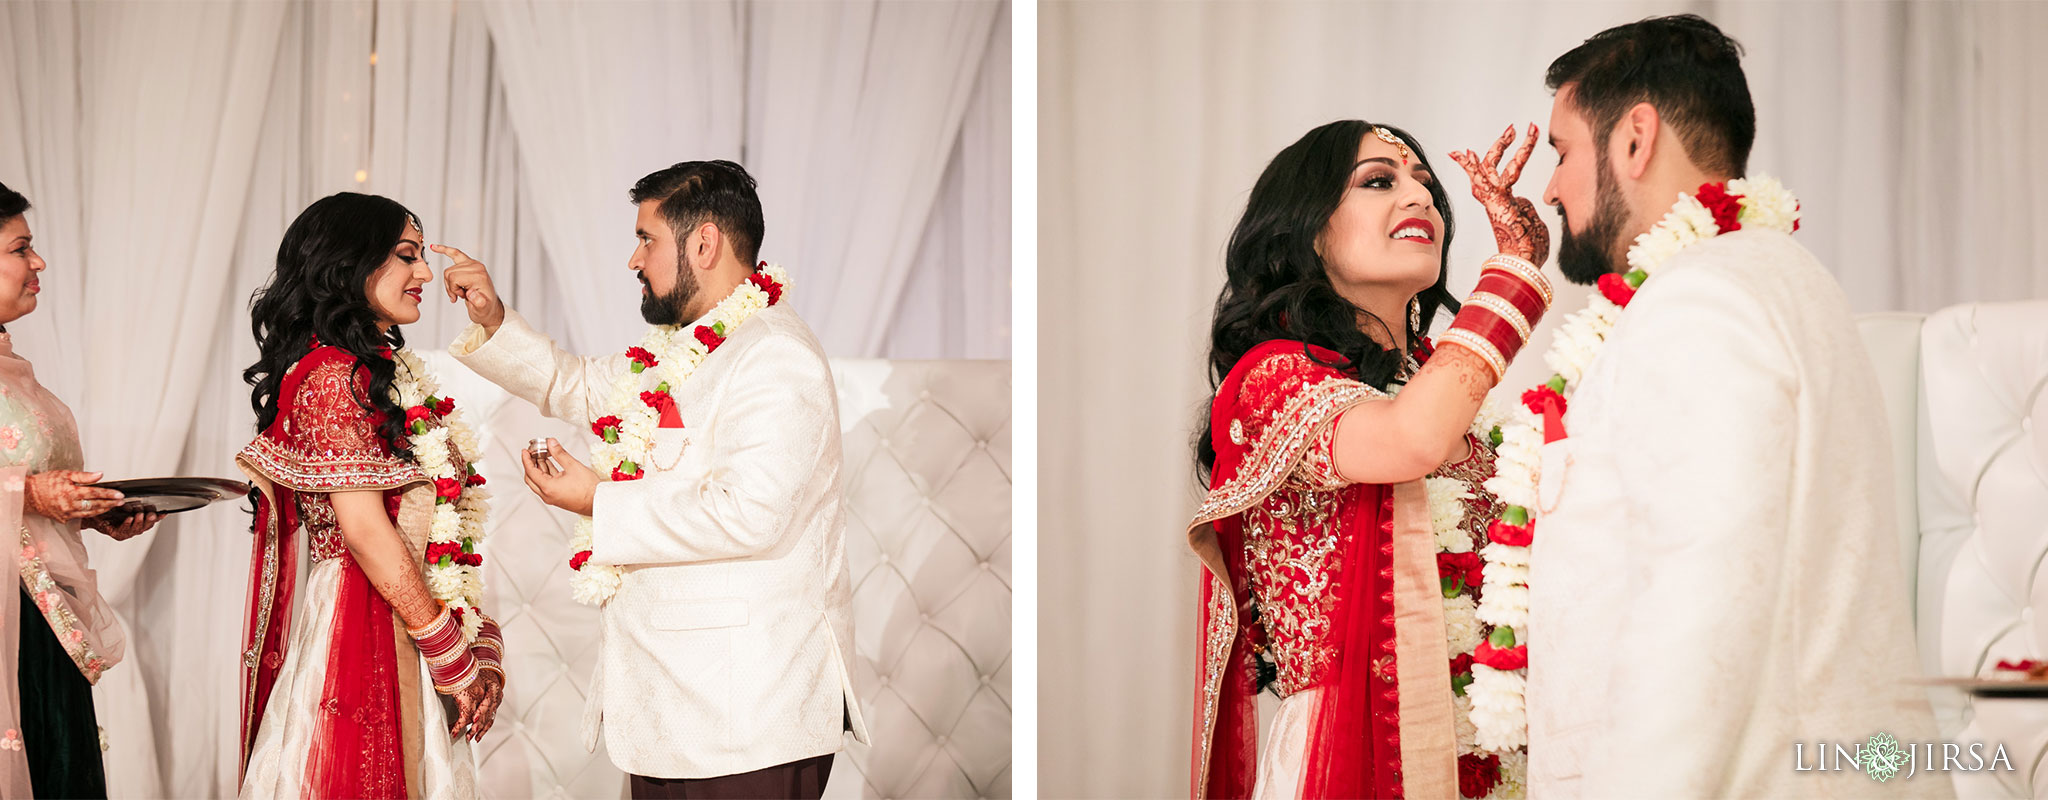 33 Diamond Bar Center Inland Empire Indian Wedding Photography